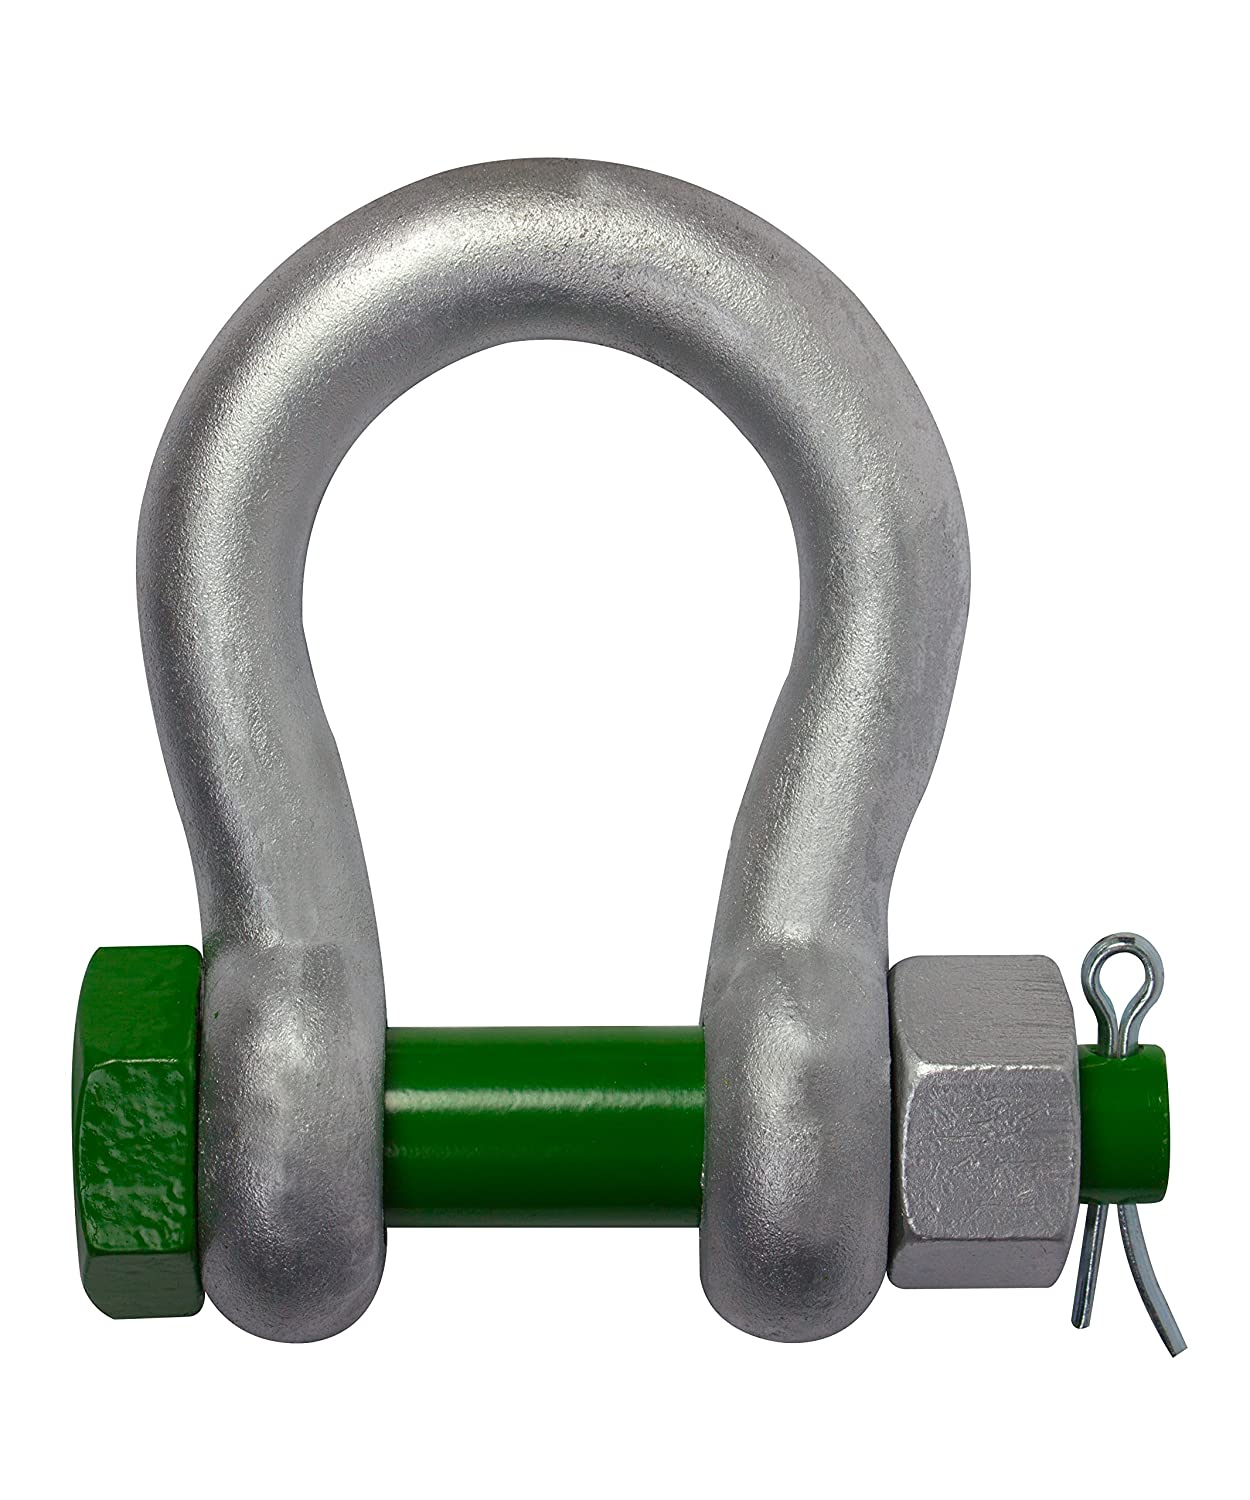 6.5 tonnes Galvanised Steel Green Screw Pin Safety D Shackle Free P+P!